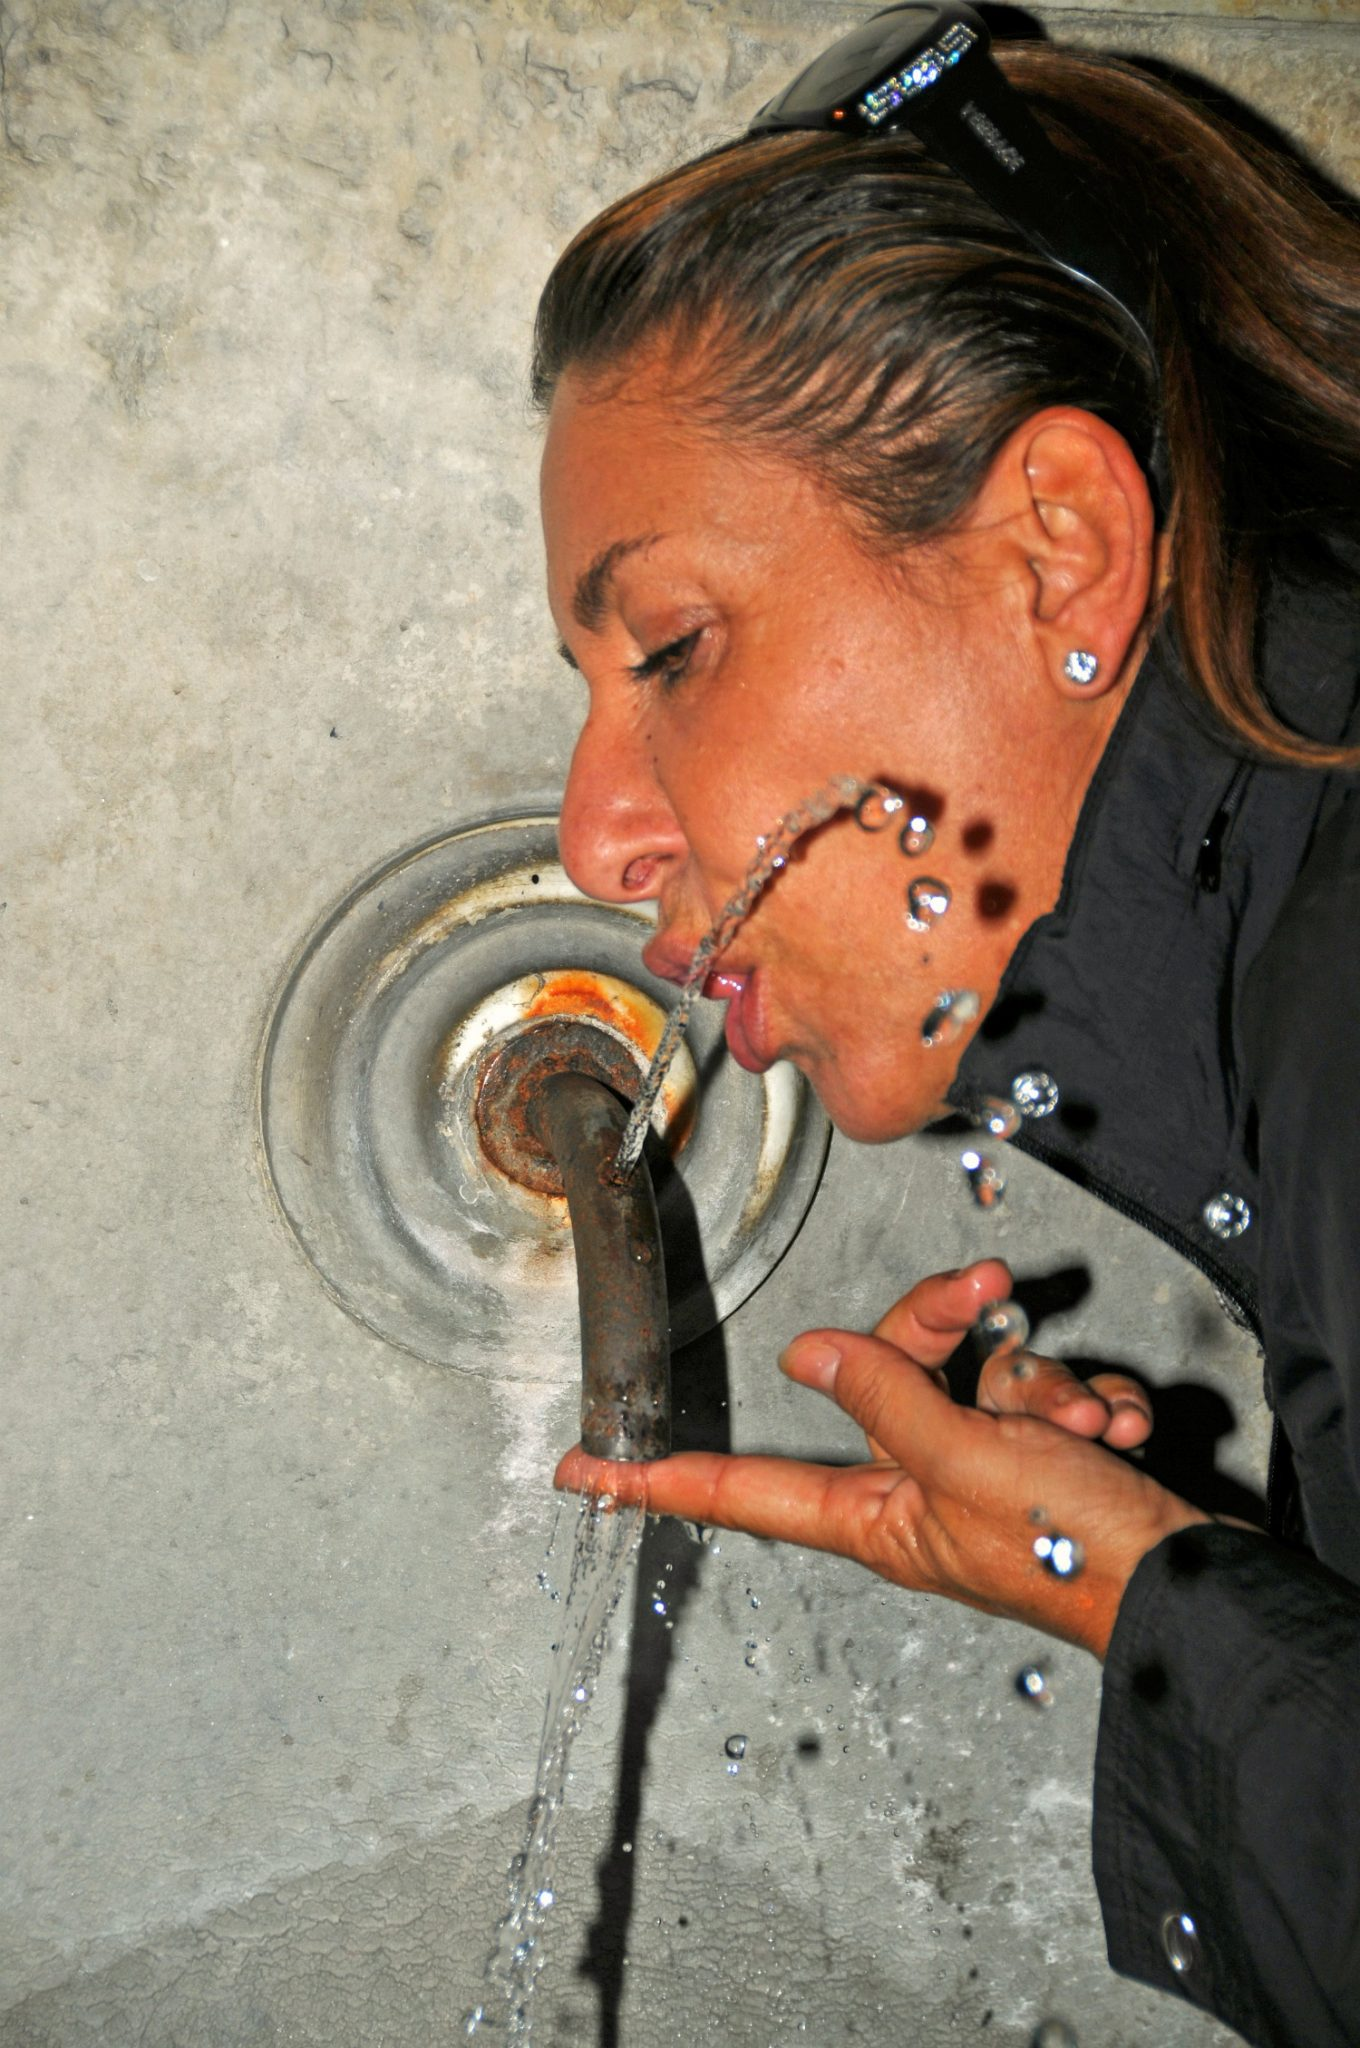 A public water fountain in Italy.